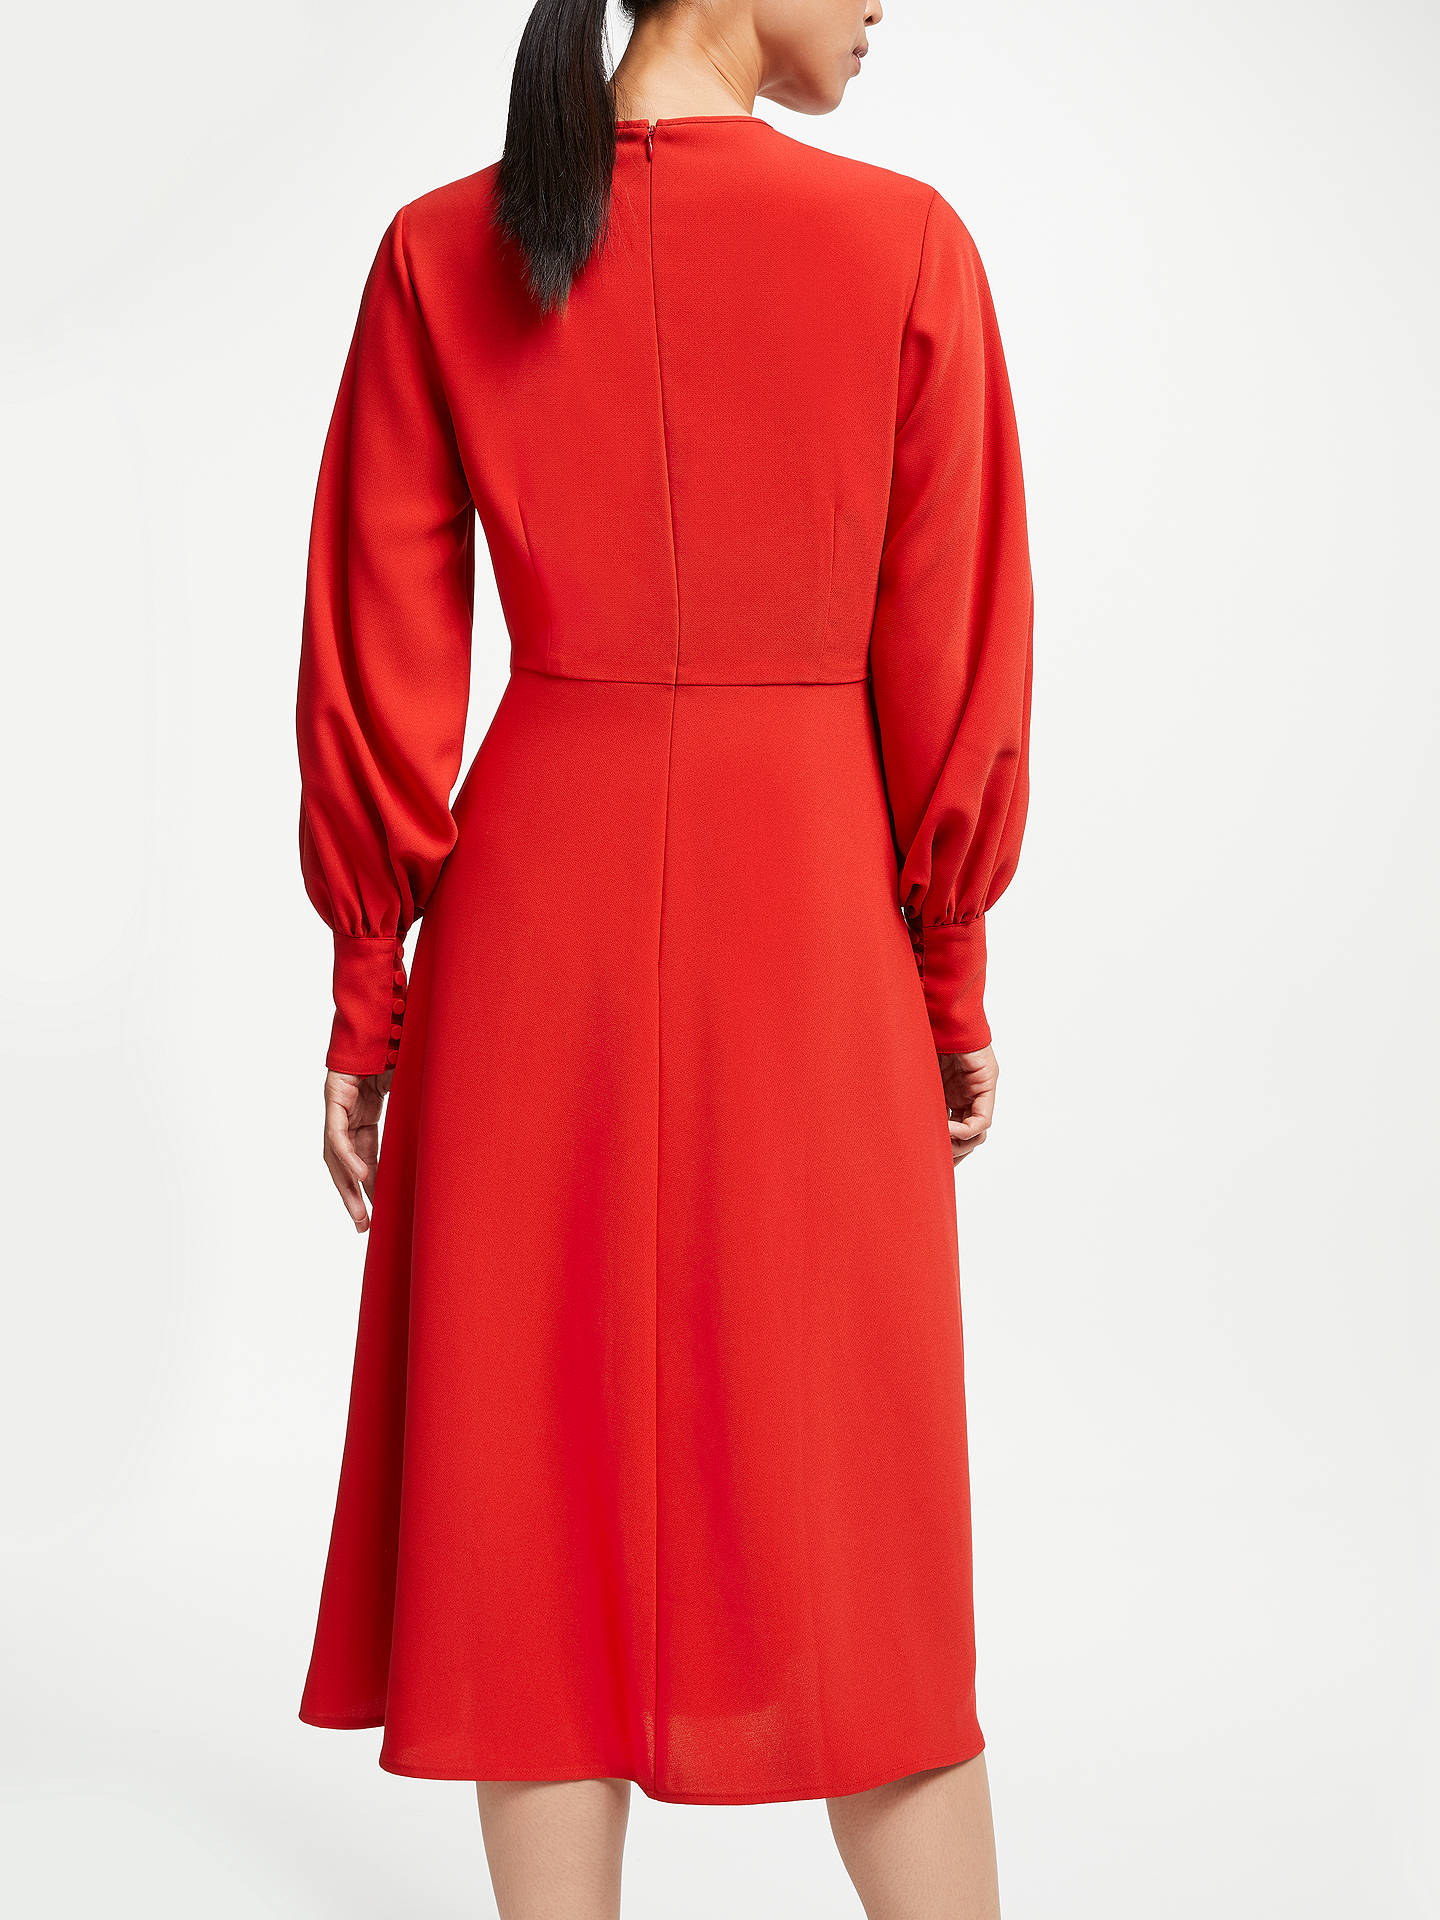 Buy John Lewis & Partners Full Sleeve Midi Dress, Burnt Orange, 8 Online at johnlewis.com